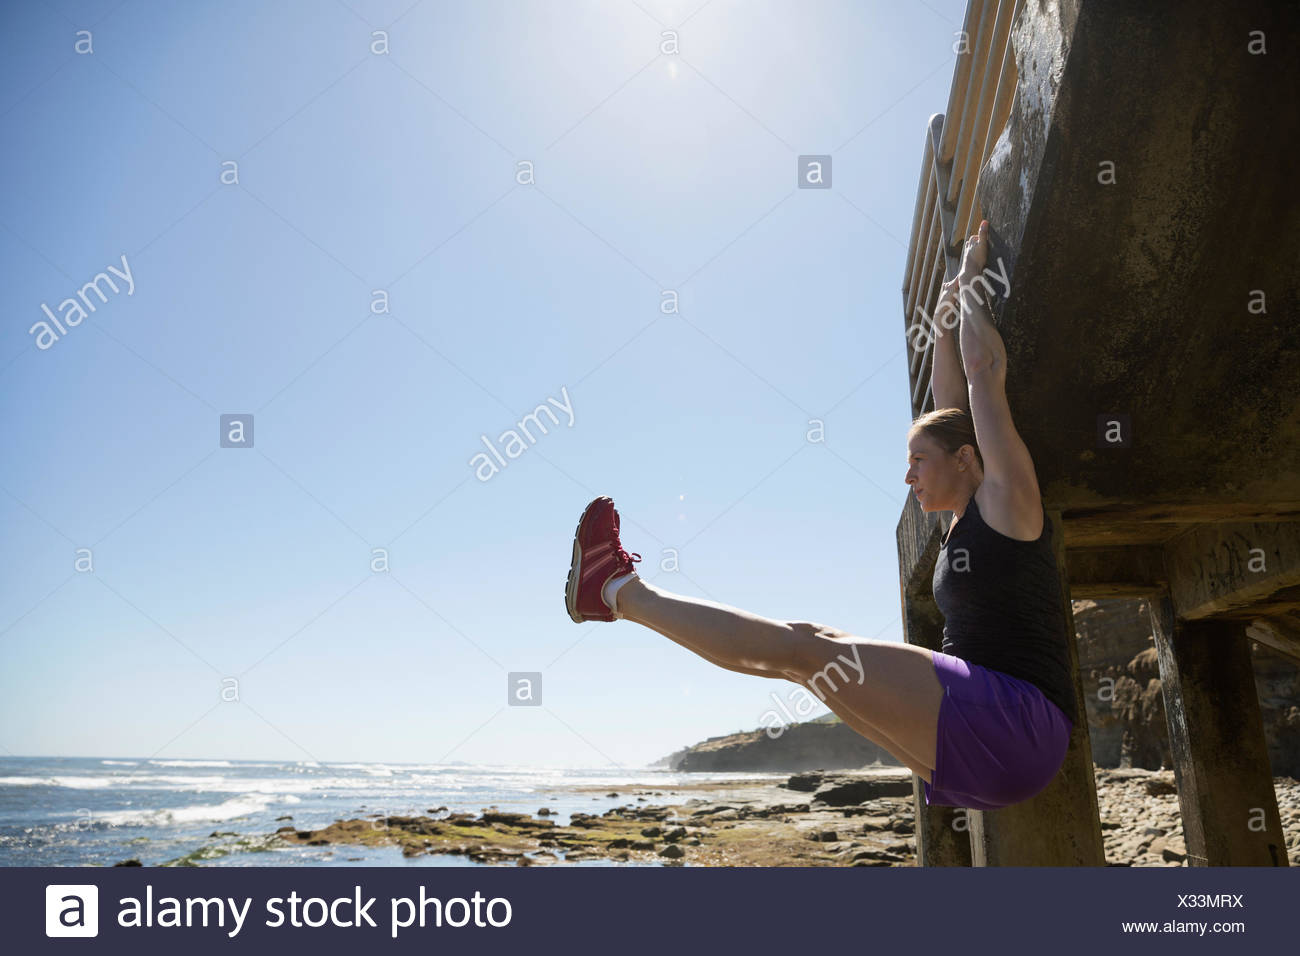 Woman exercising, hanging from stairs doing leg lifts along sunny ocean - Stock Image